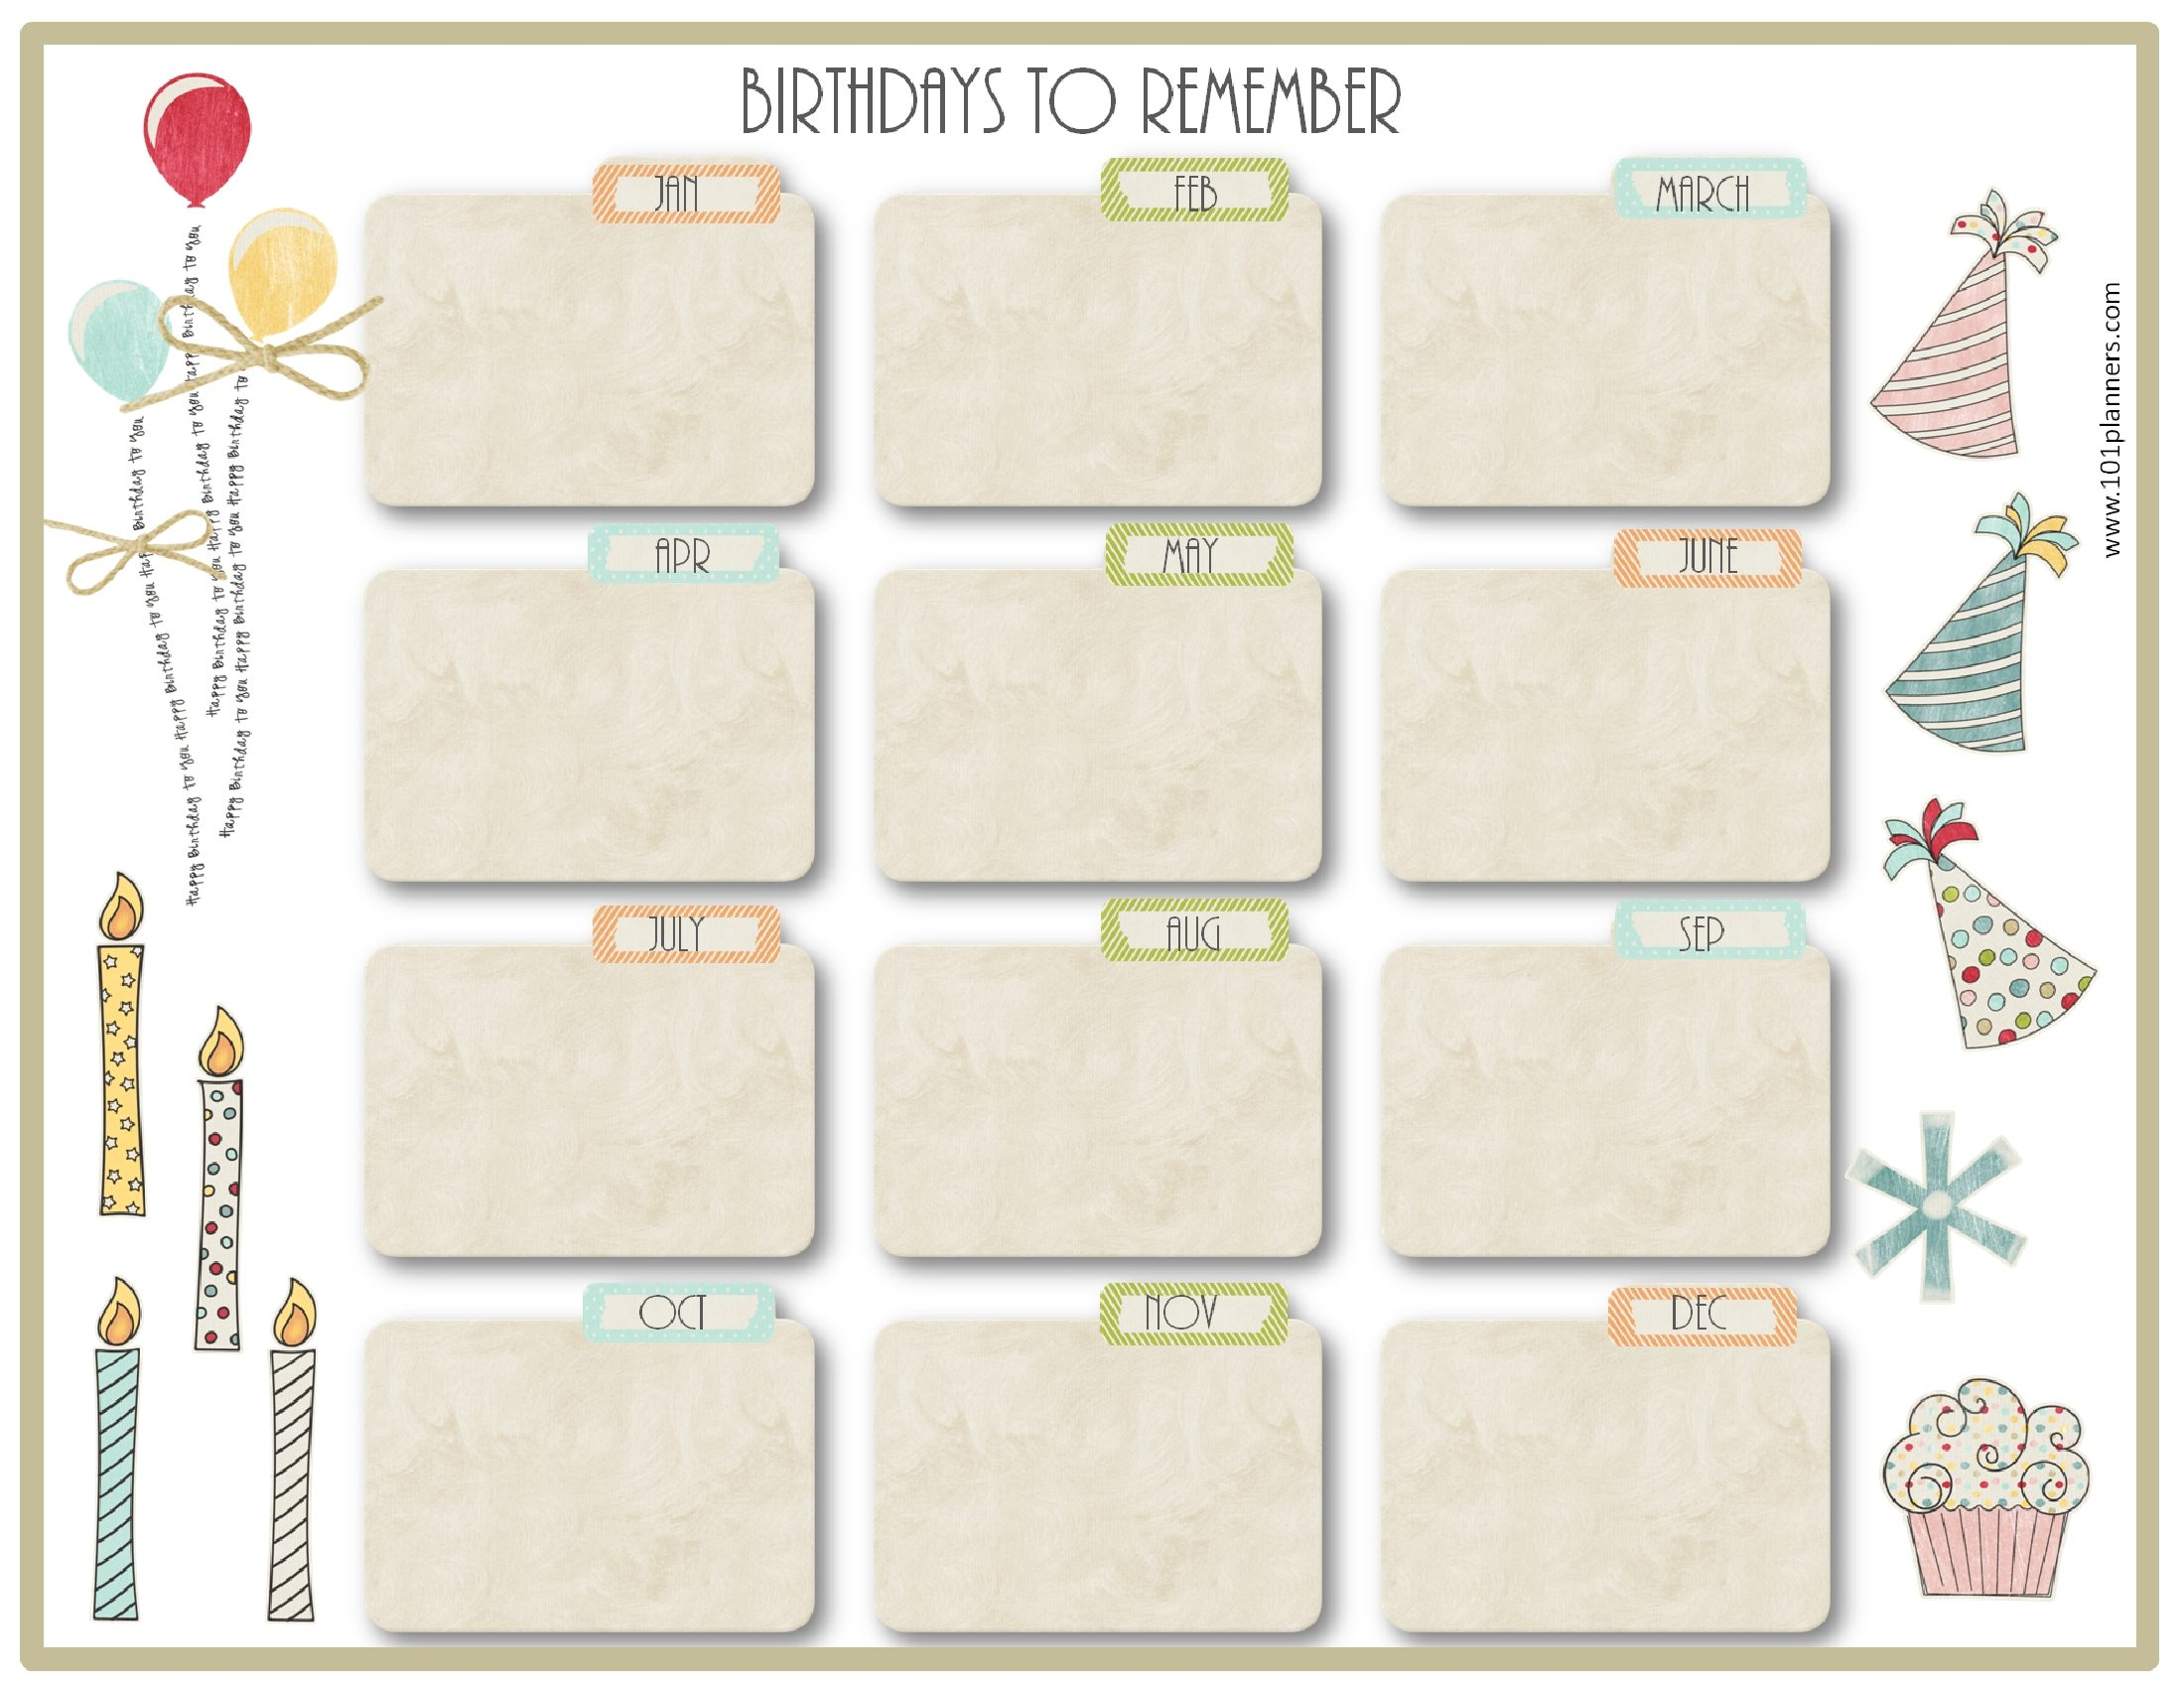 birthday calendar design templates ; birthday-calendar-template-7